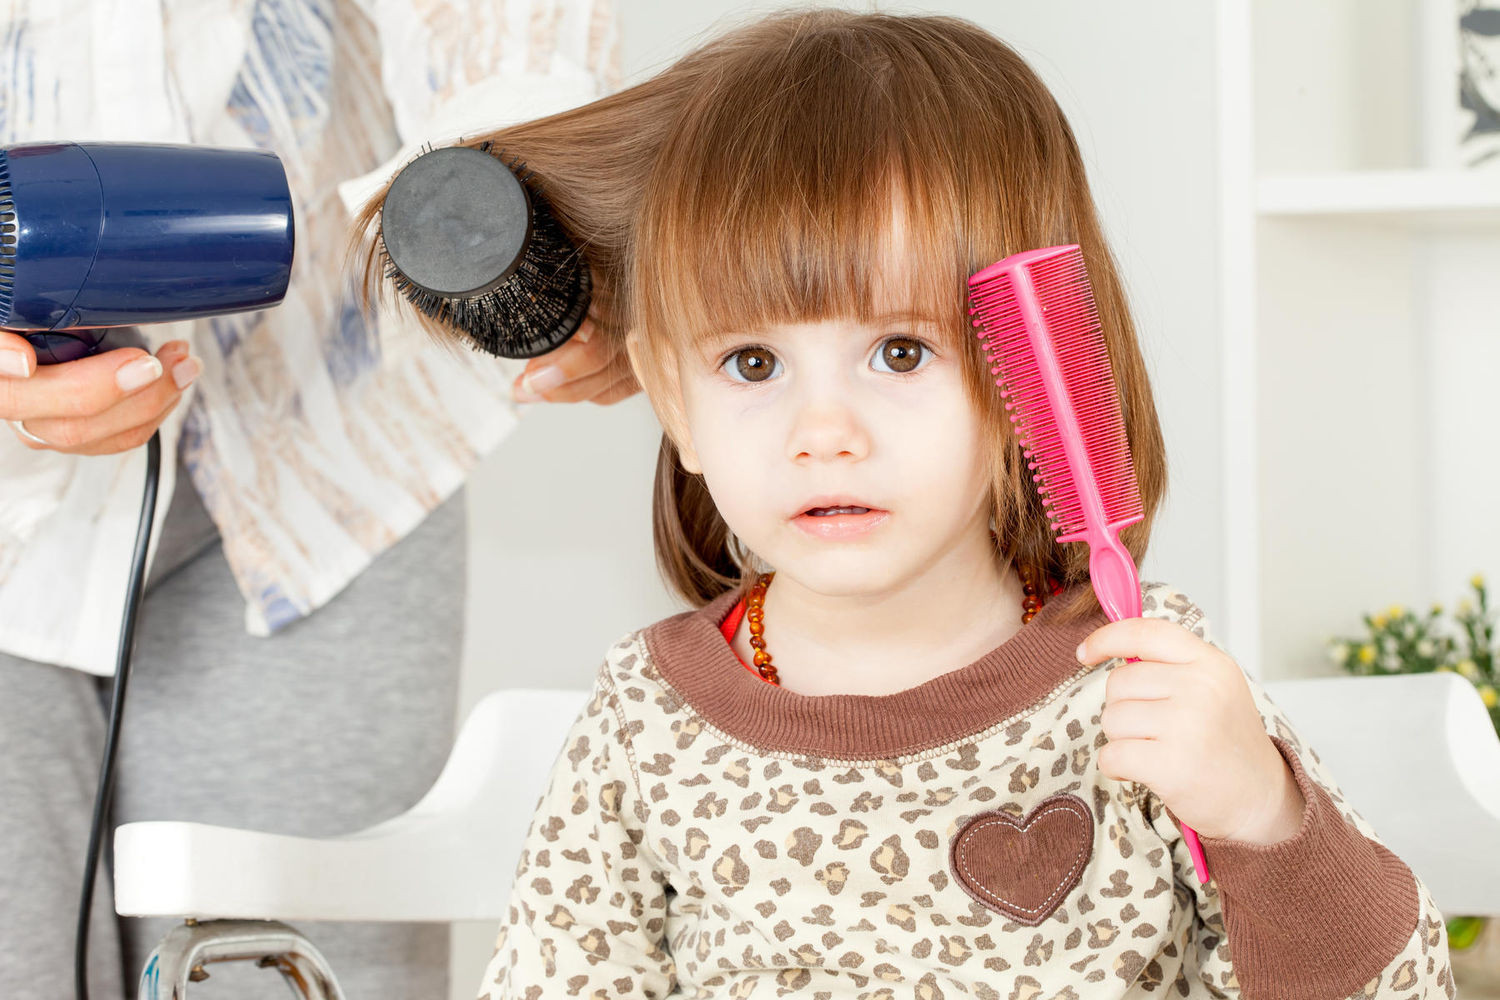 Best ideas about Toddler Girls Short Haircuts . Save or Pin 6 Tricks for Managing Baby Grooming Now.